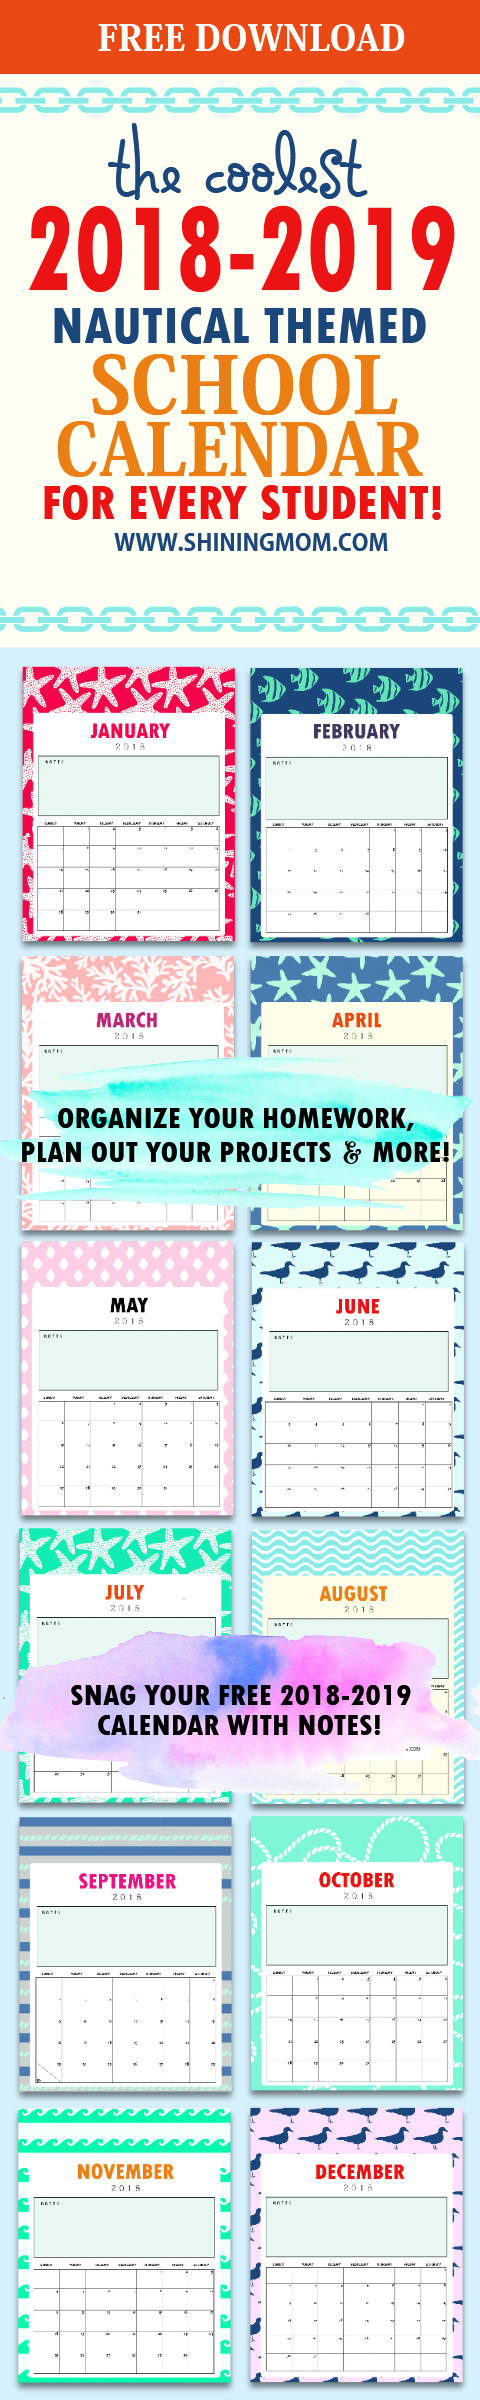 Free school calendar 2018 for kids